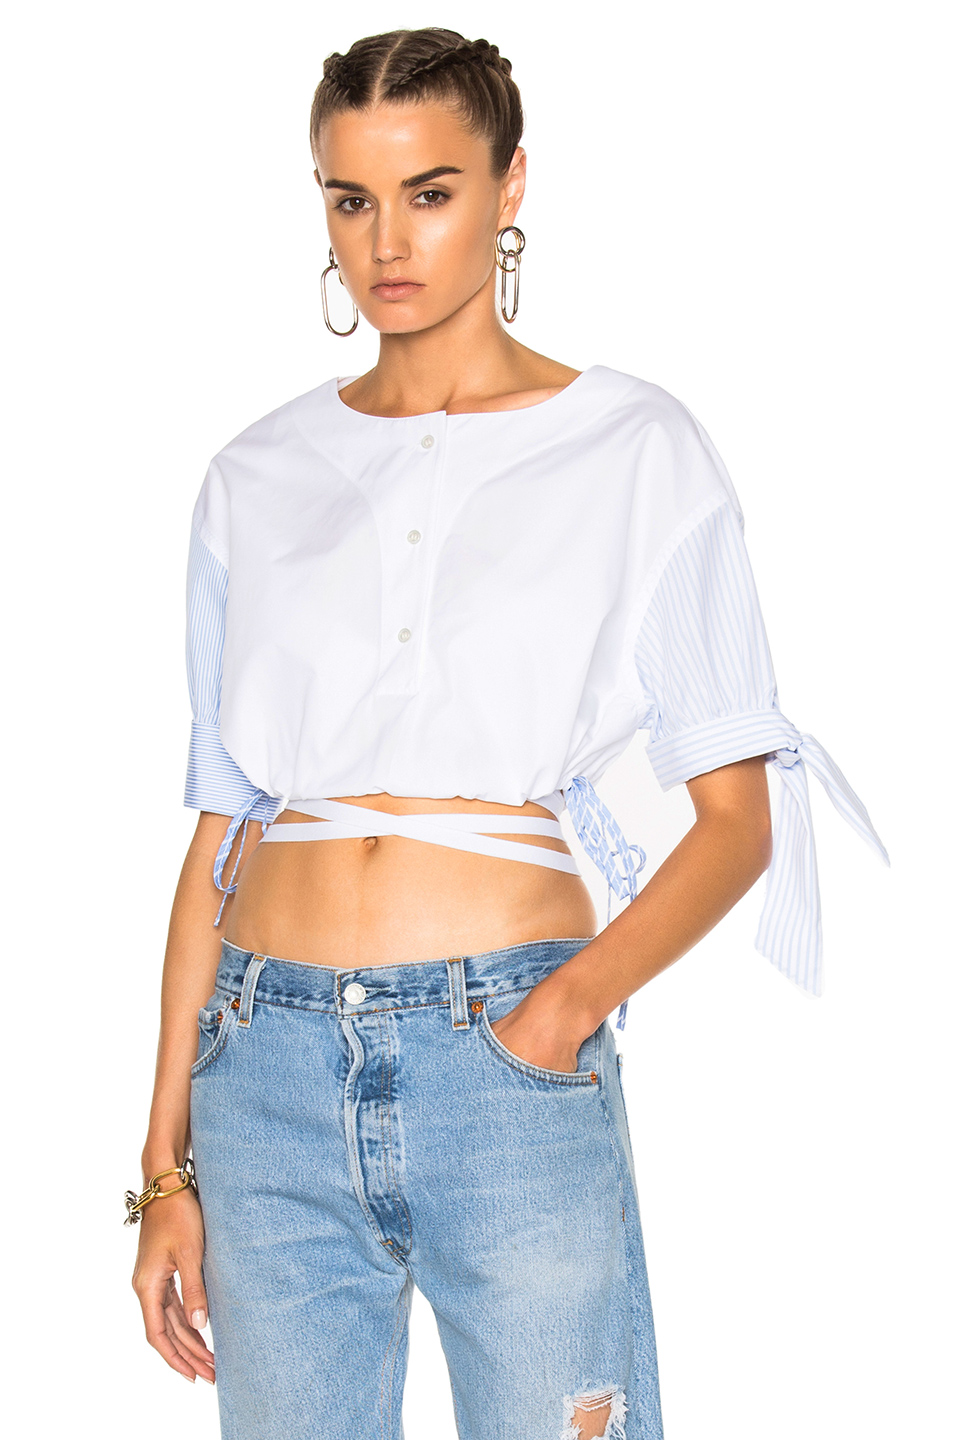 Alexander Wang Short Sleeve Cropped Shirt in Blue,Stripes,White